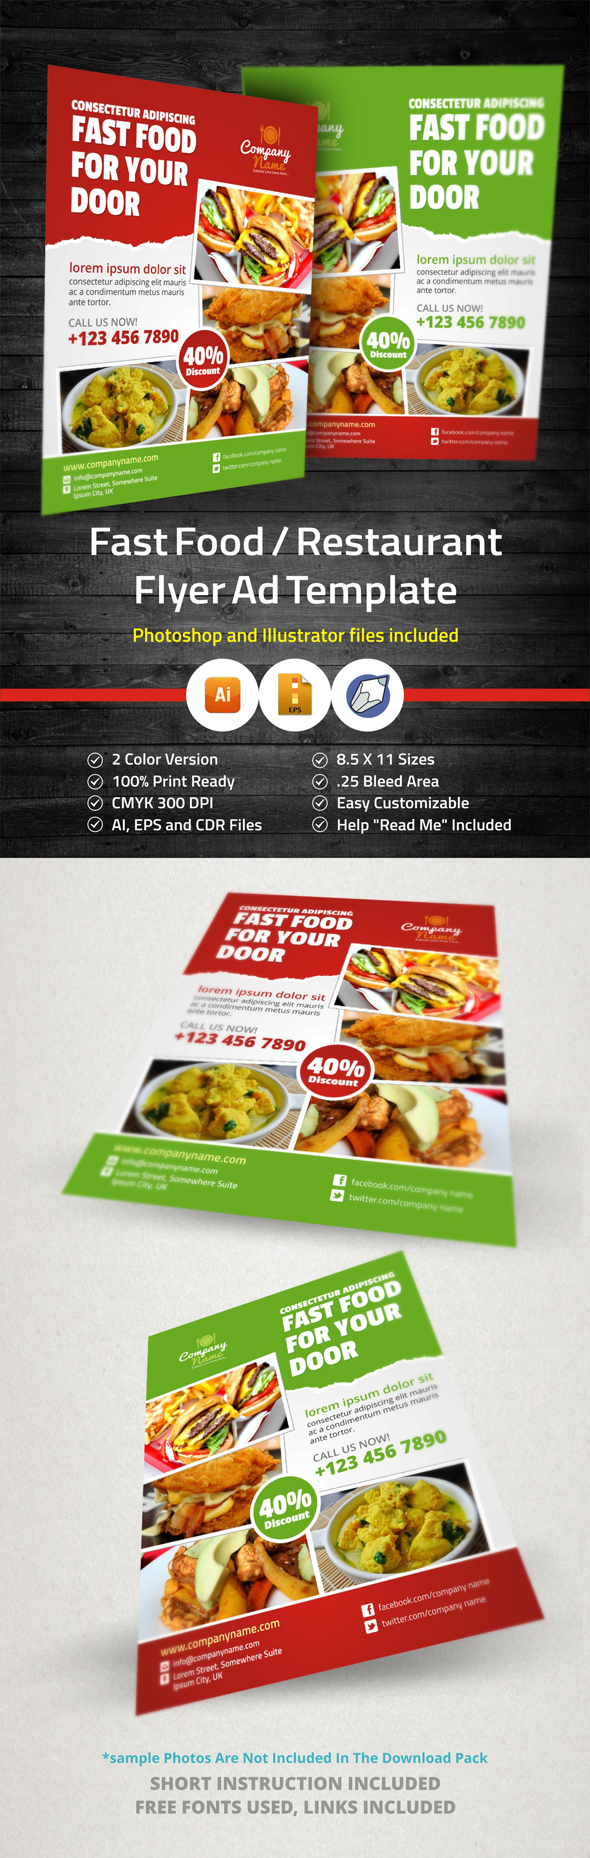 Fast Food Restaurant Flyer Ad Template On Behance